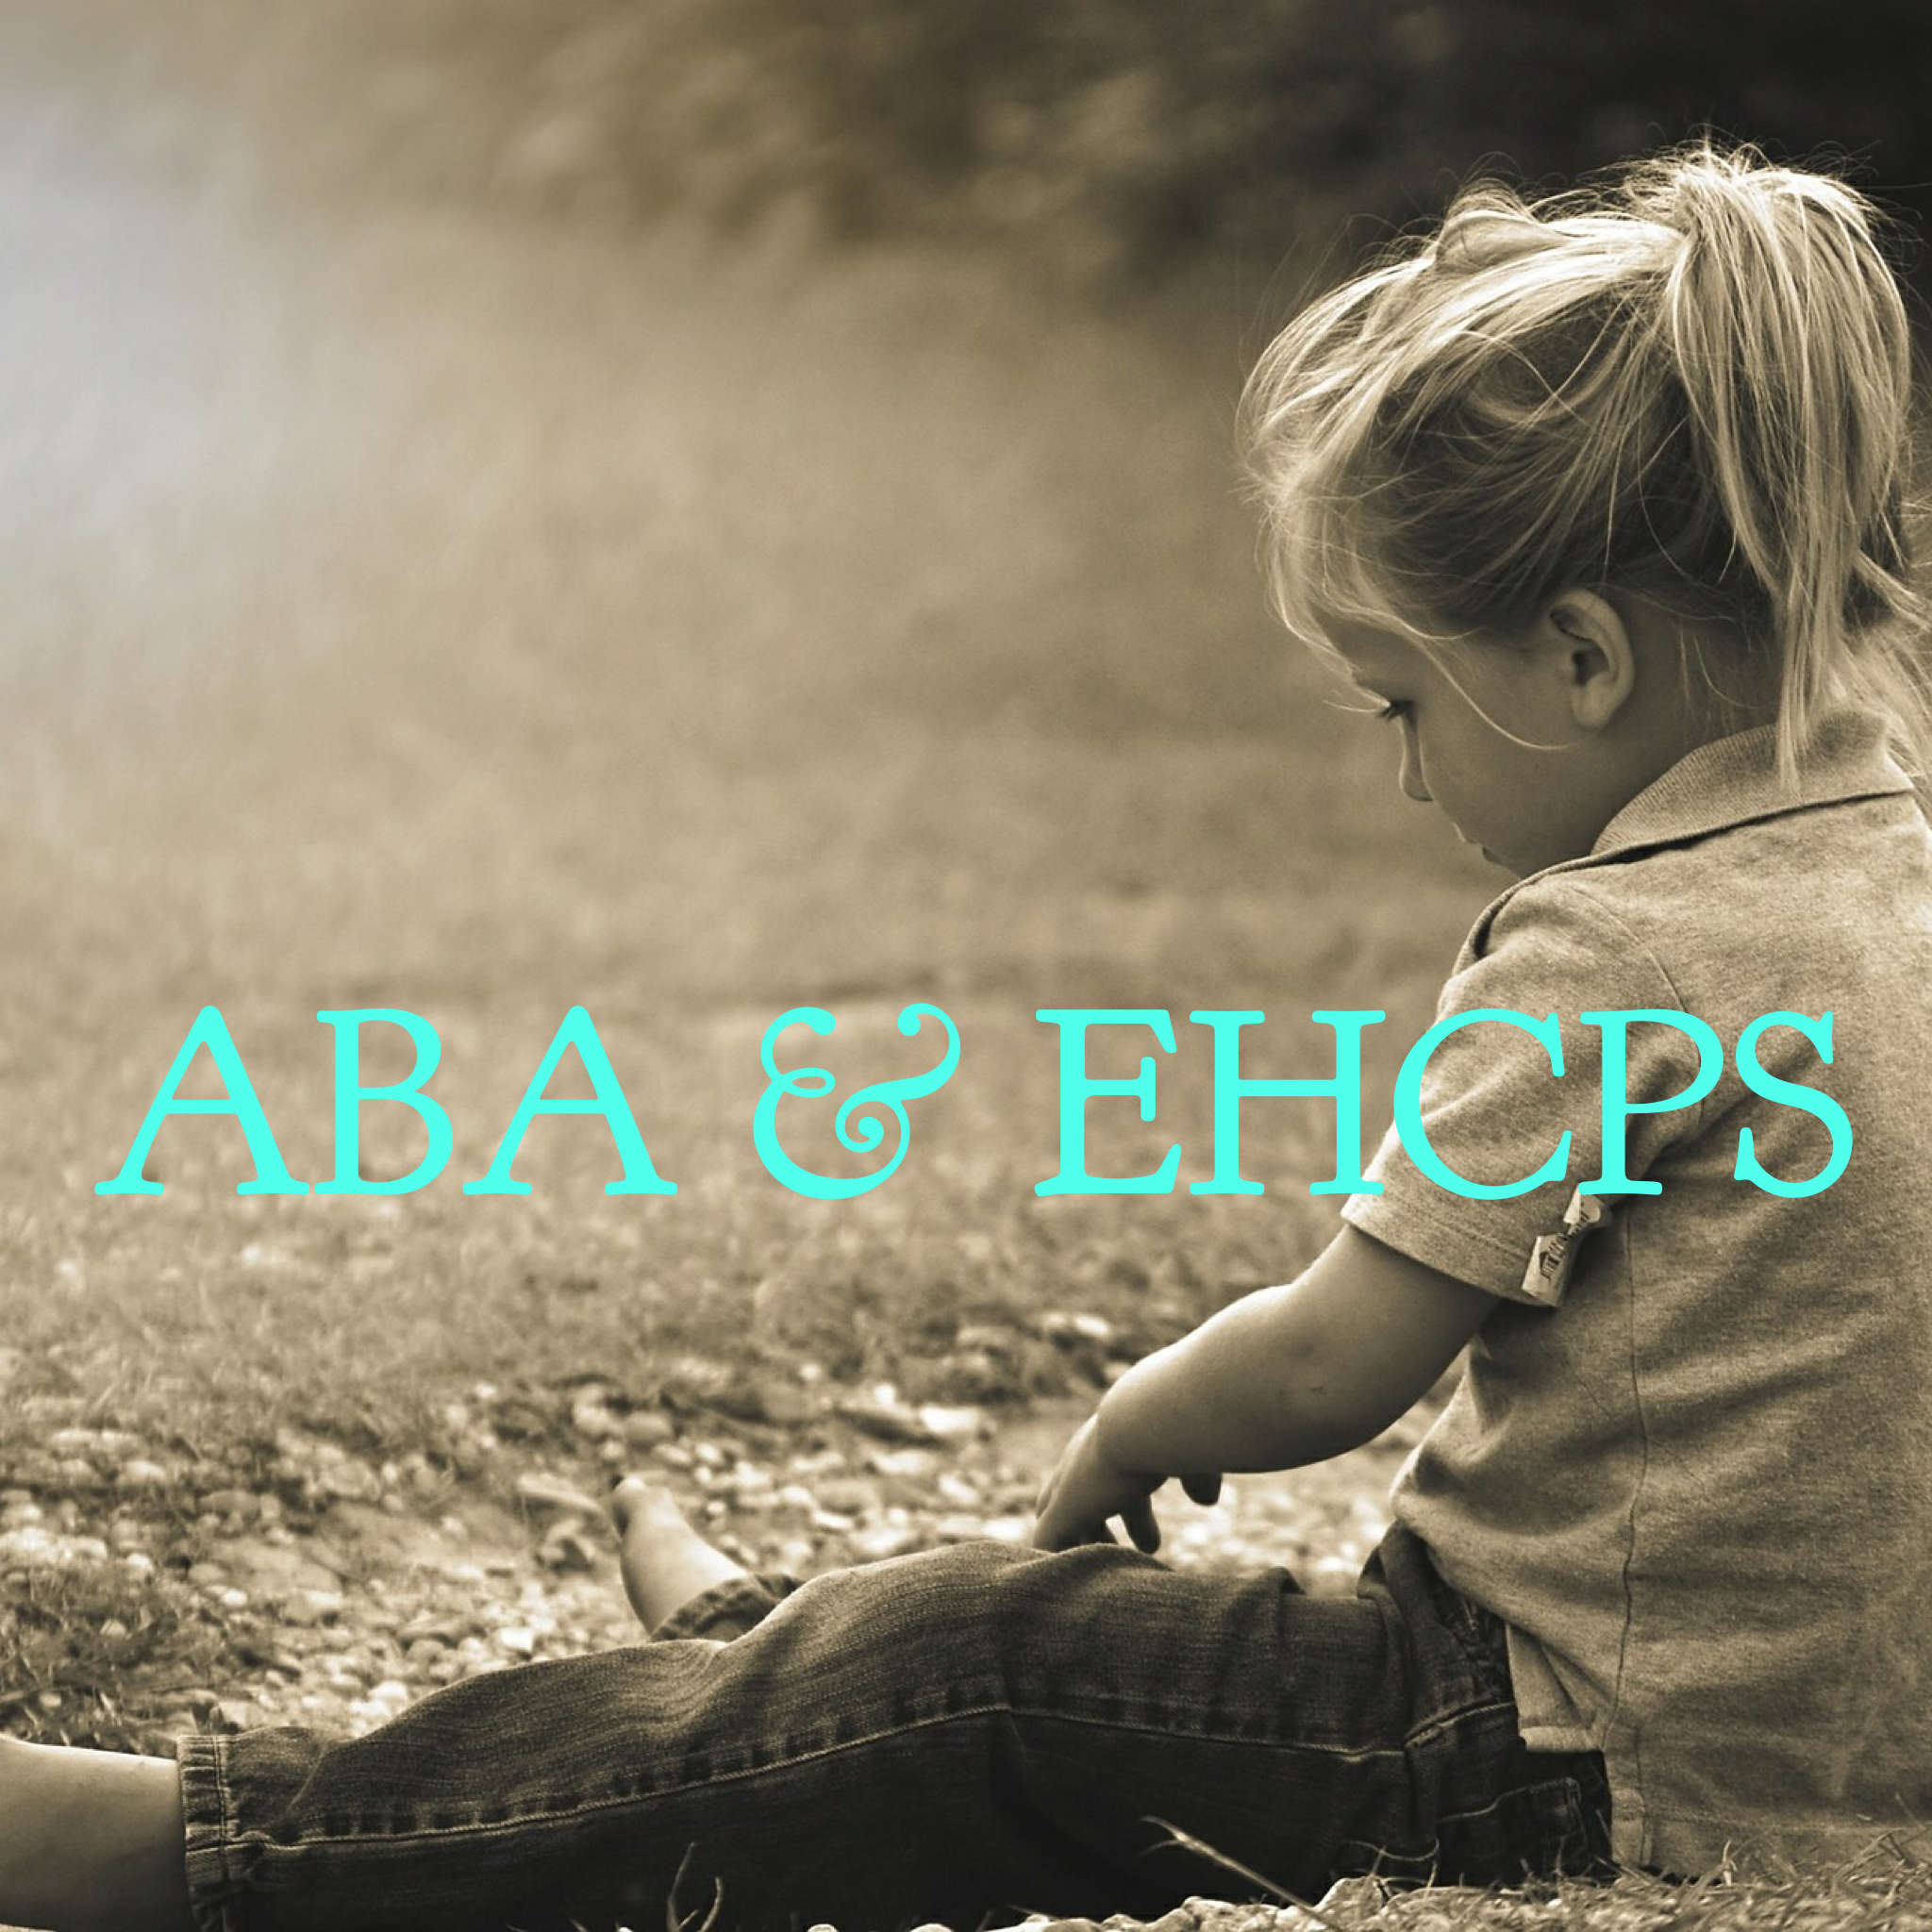 ABA and EHCPs.PNG